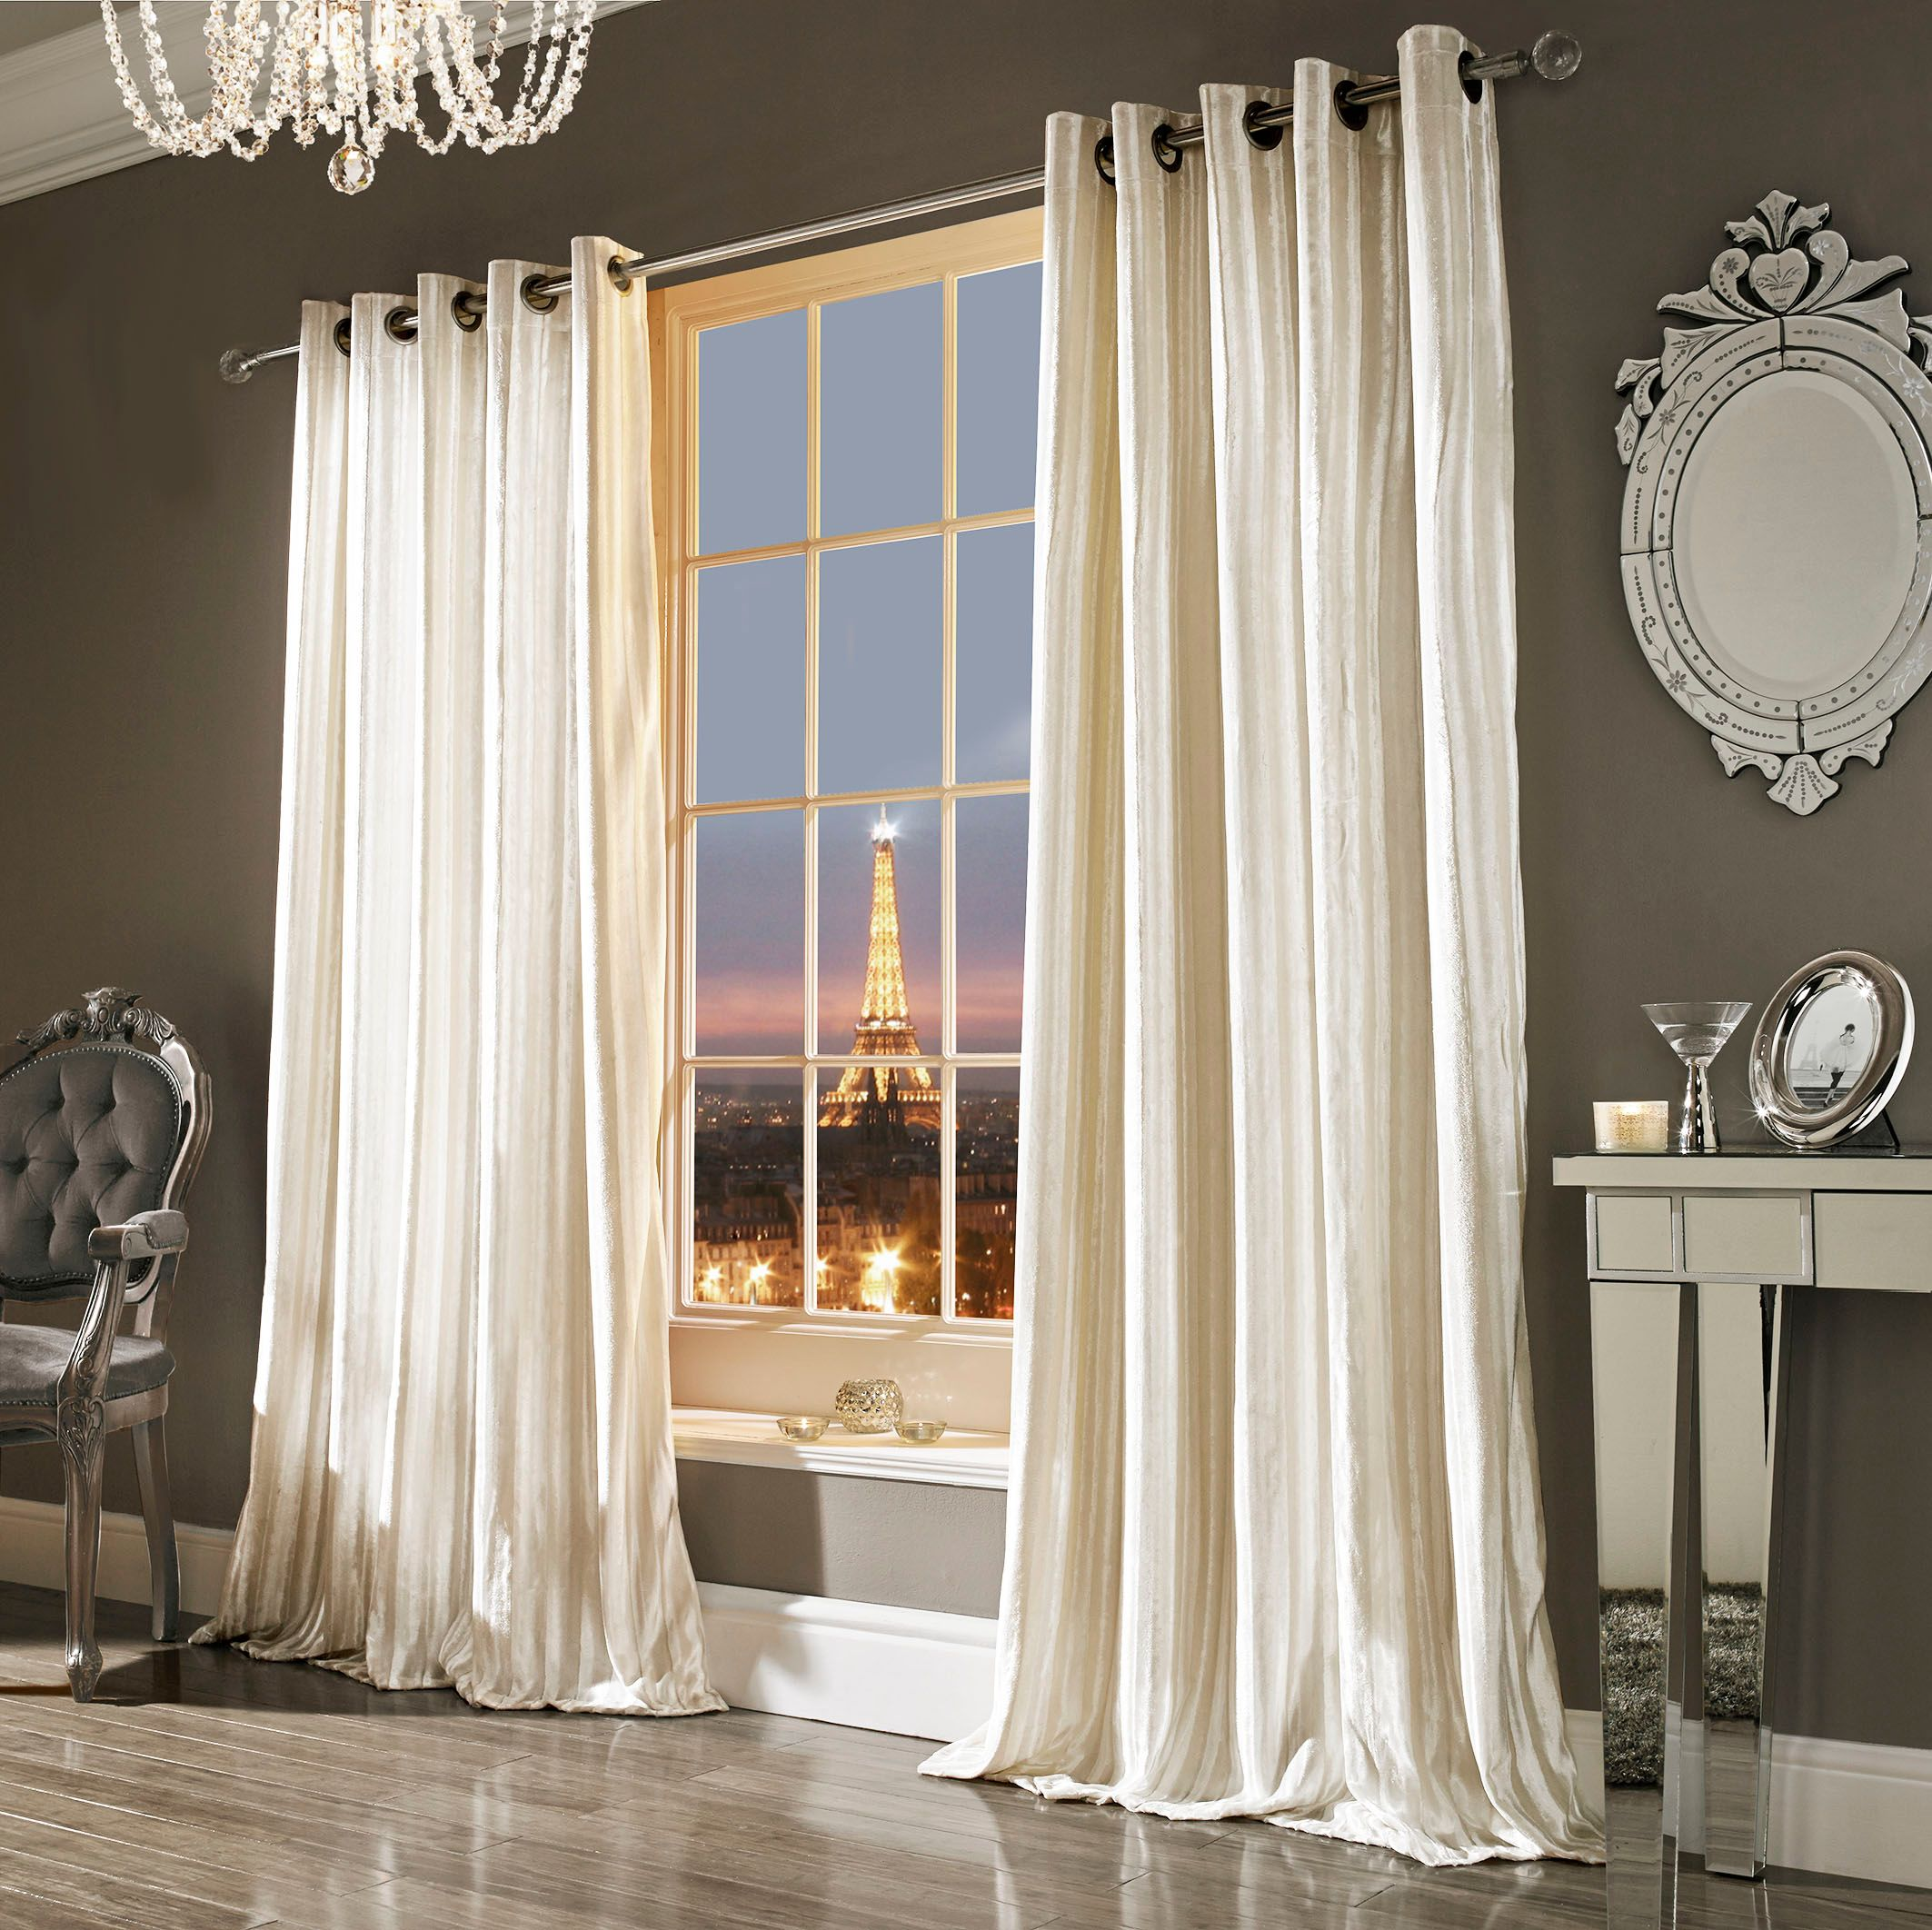 Kylie Minogue Kylie Minogue Iliana Lined Eyelet Curtain Oyster 66x90